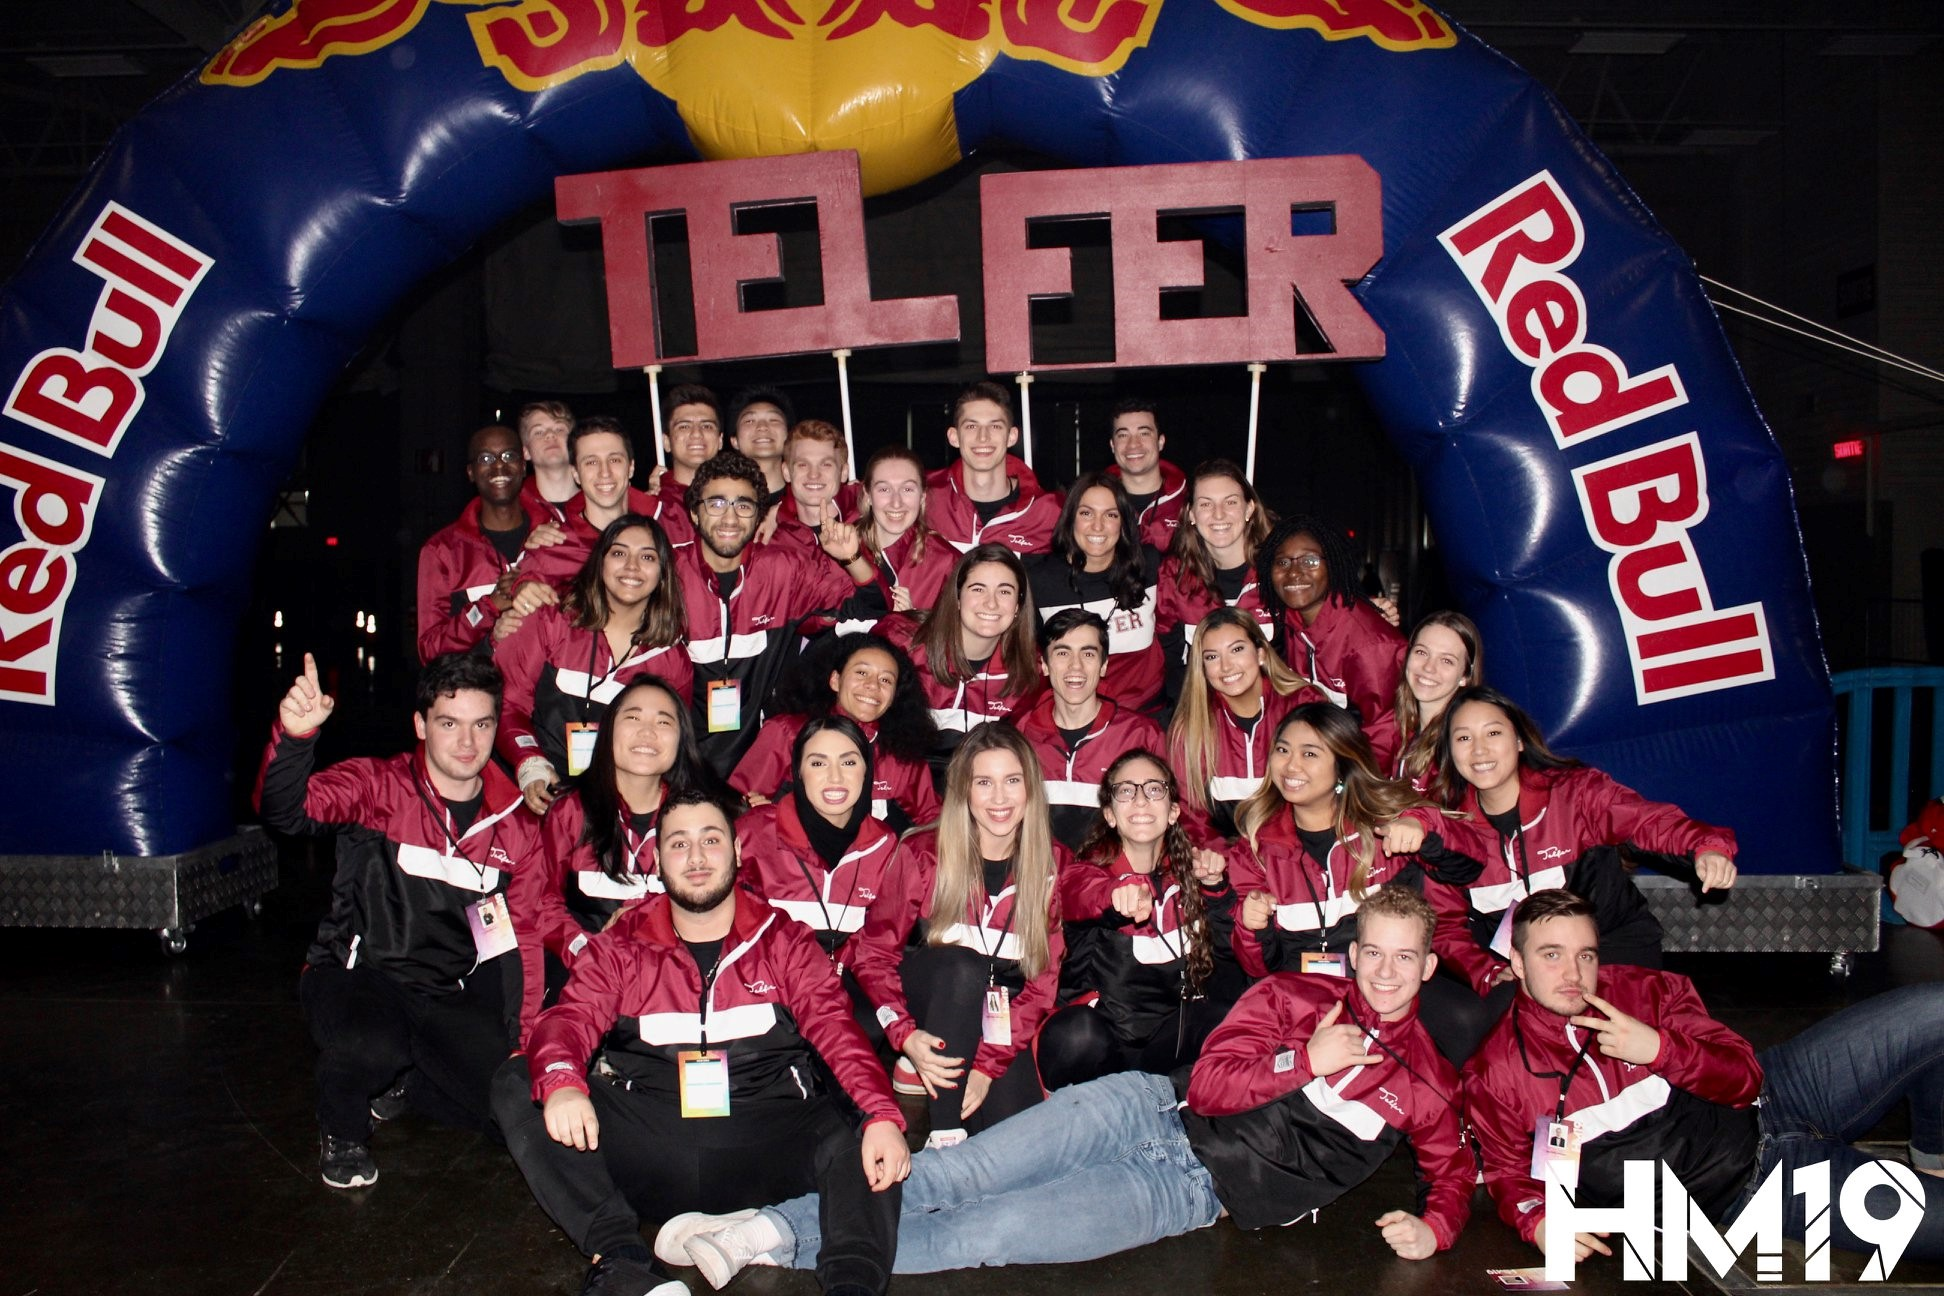 Group of students under a RedBull arch with Telfer name.